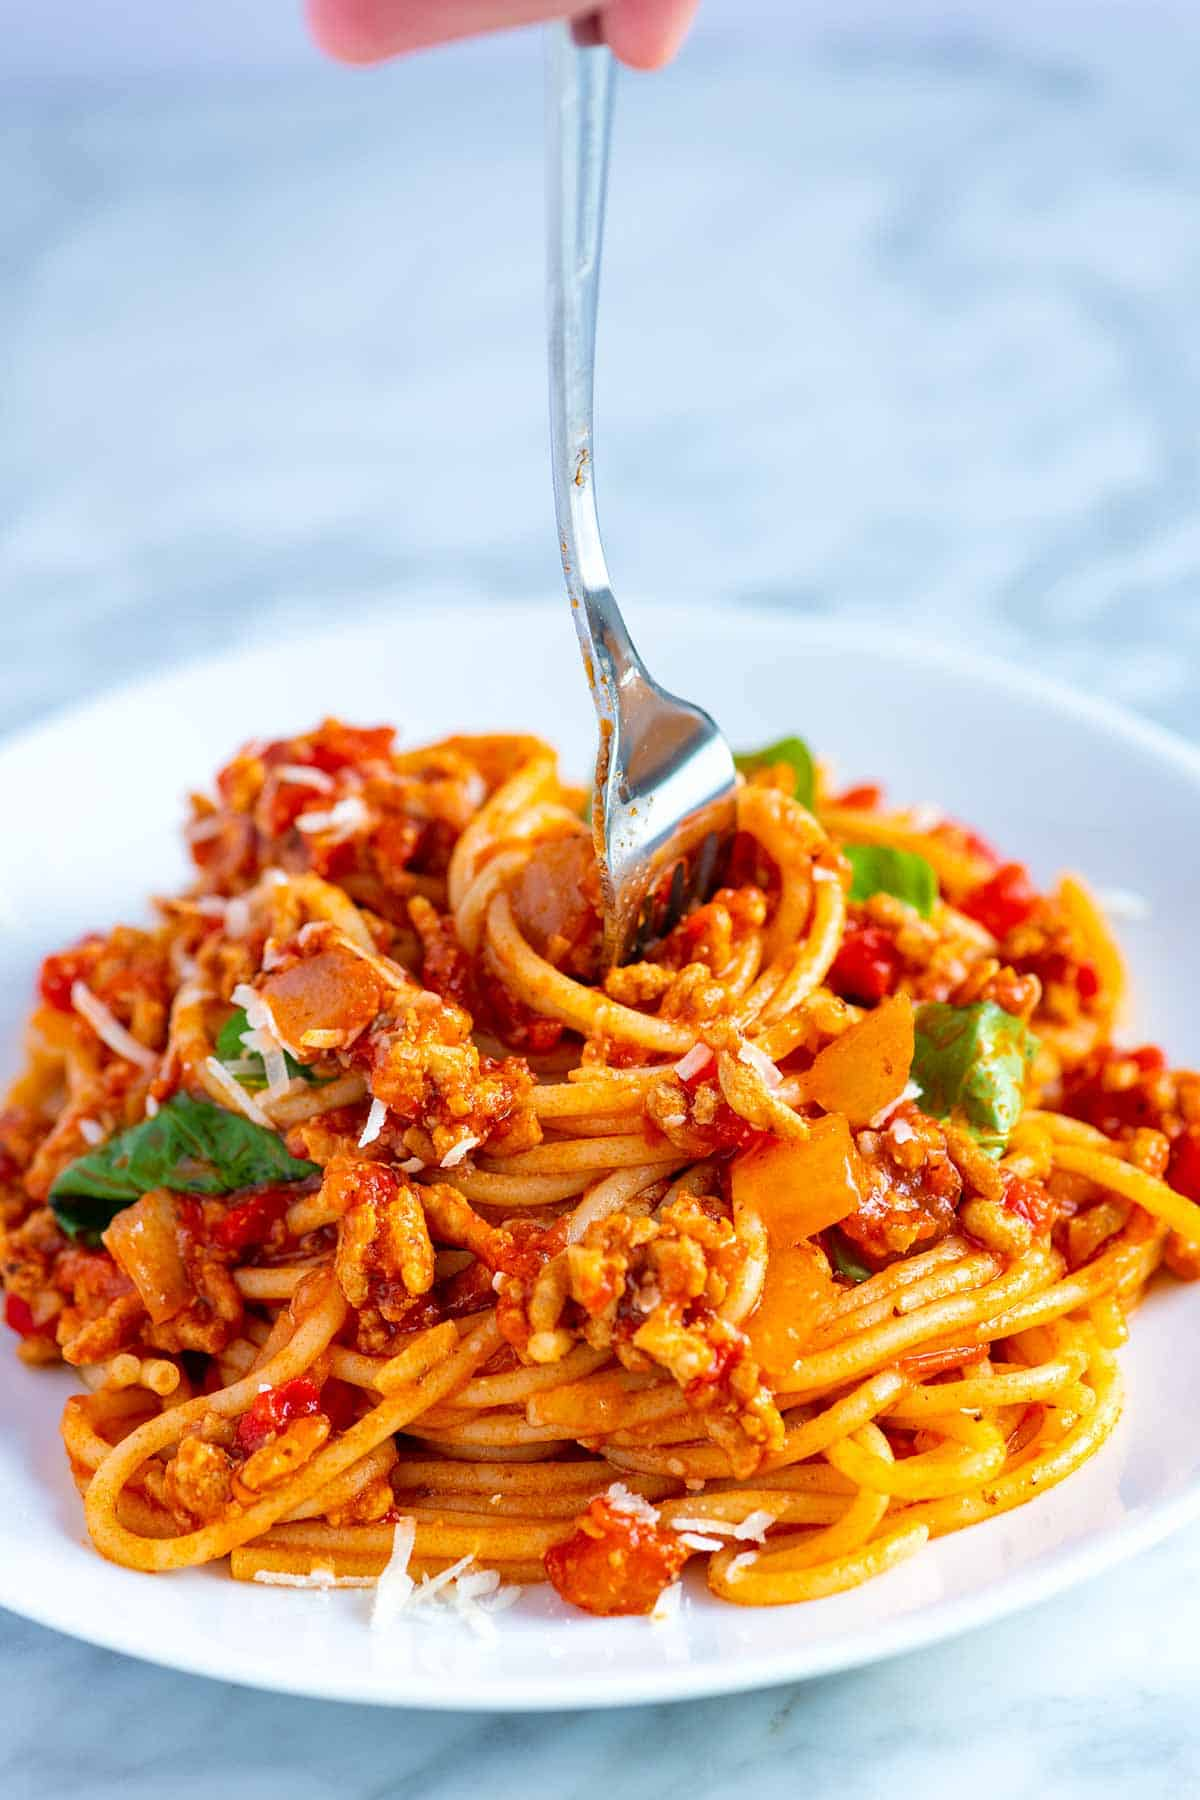 Easy Weeknight Spaghetti with Meat Sauce Recipe